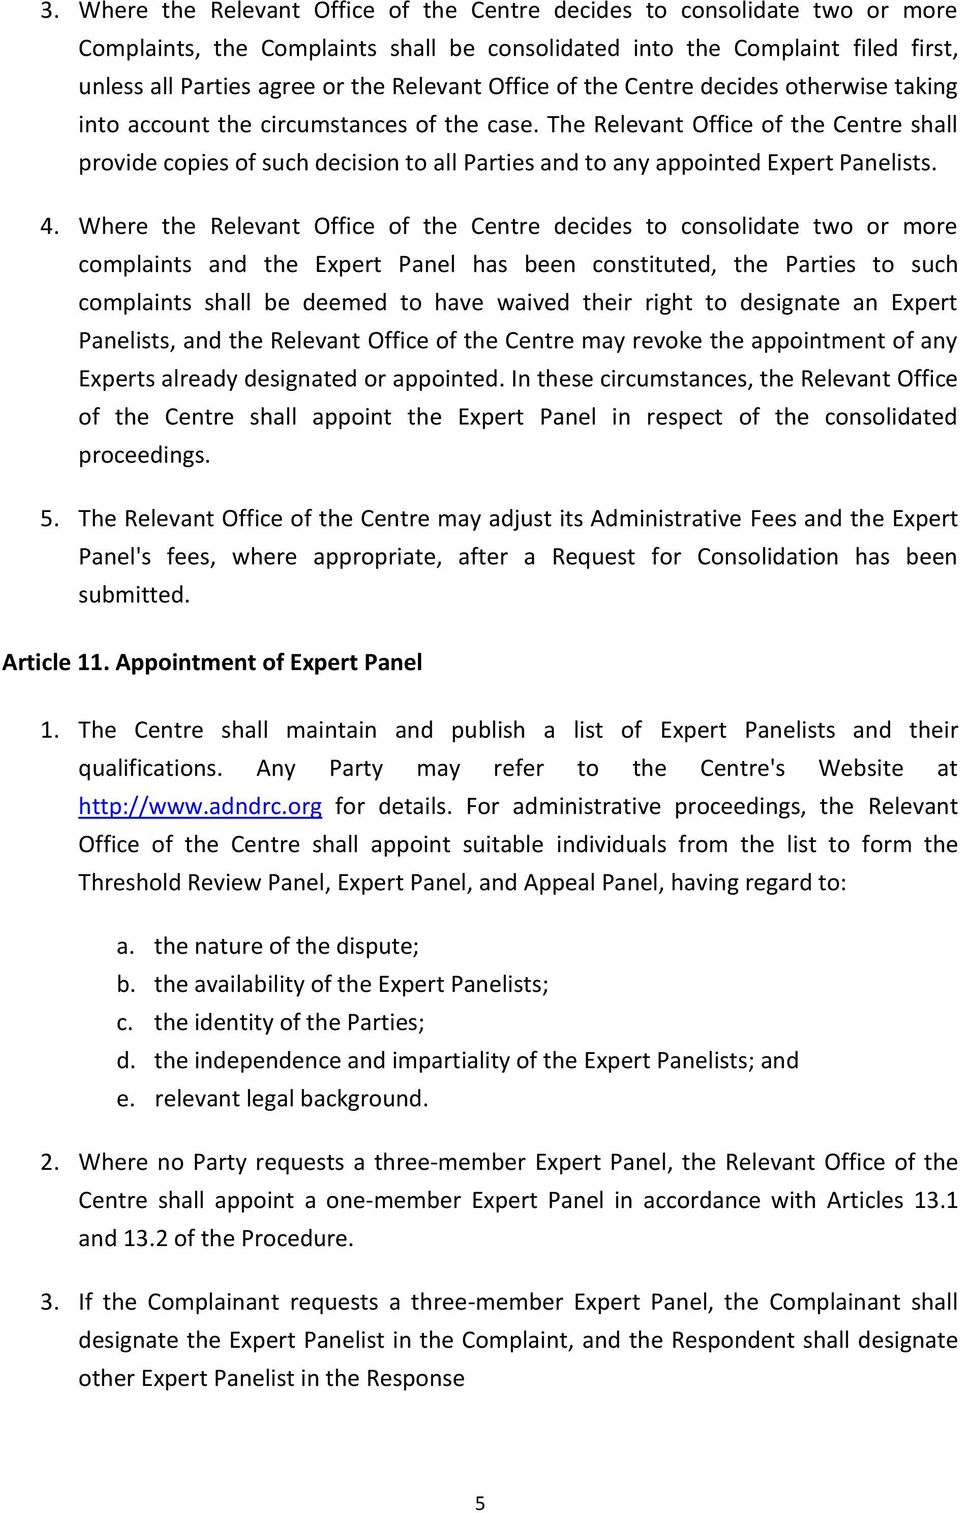 The Relevant Office of the Centre shall provide copies of such decision to all Parties and to any appointed Expert Panelists. 4.